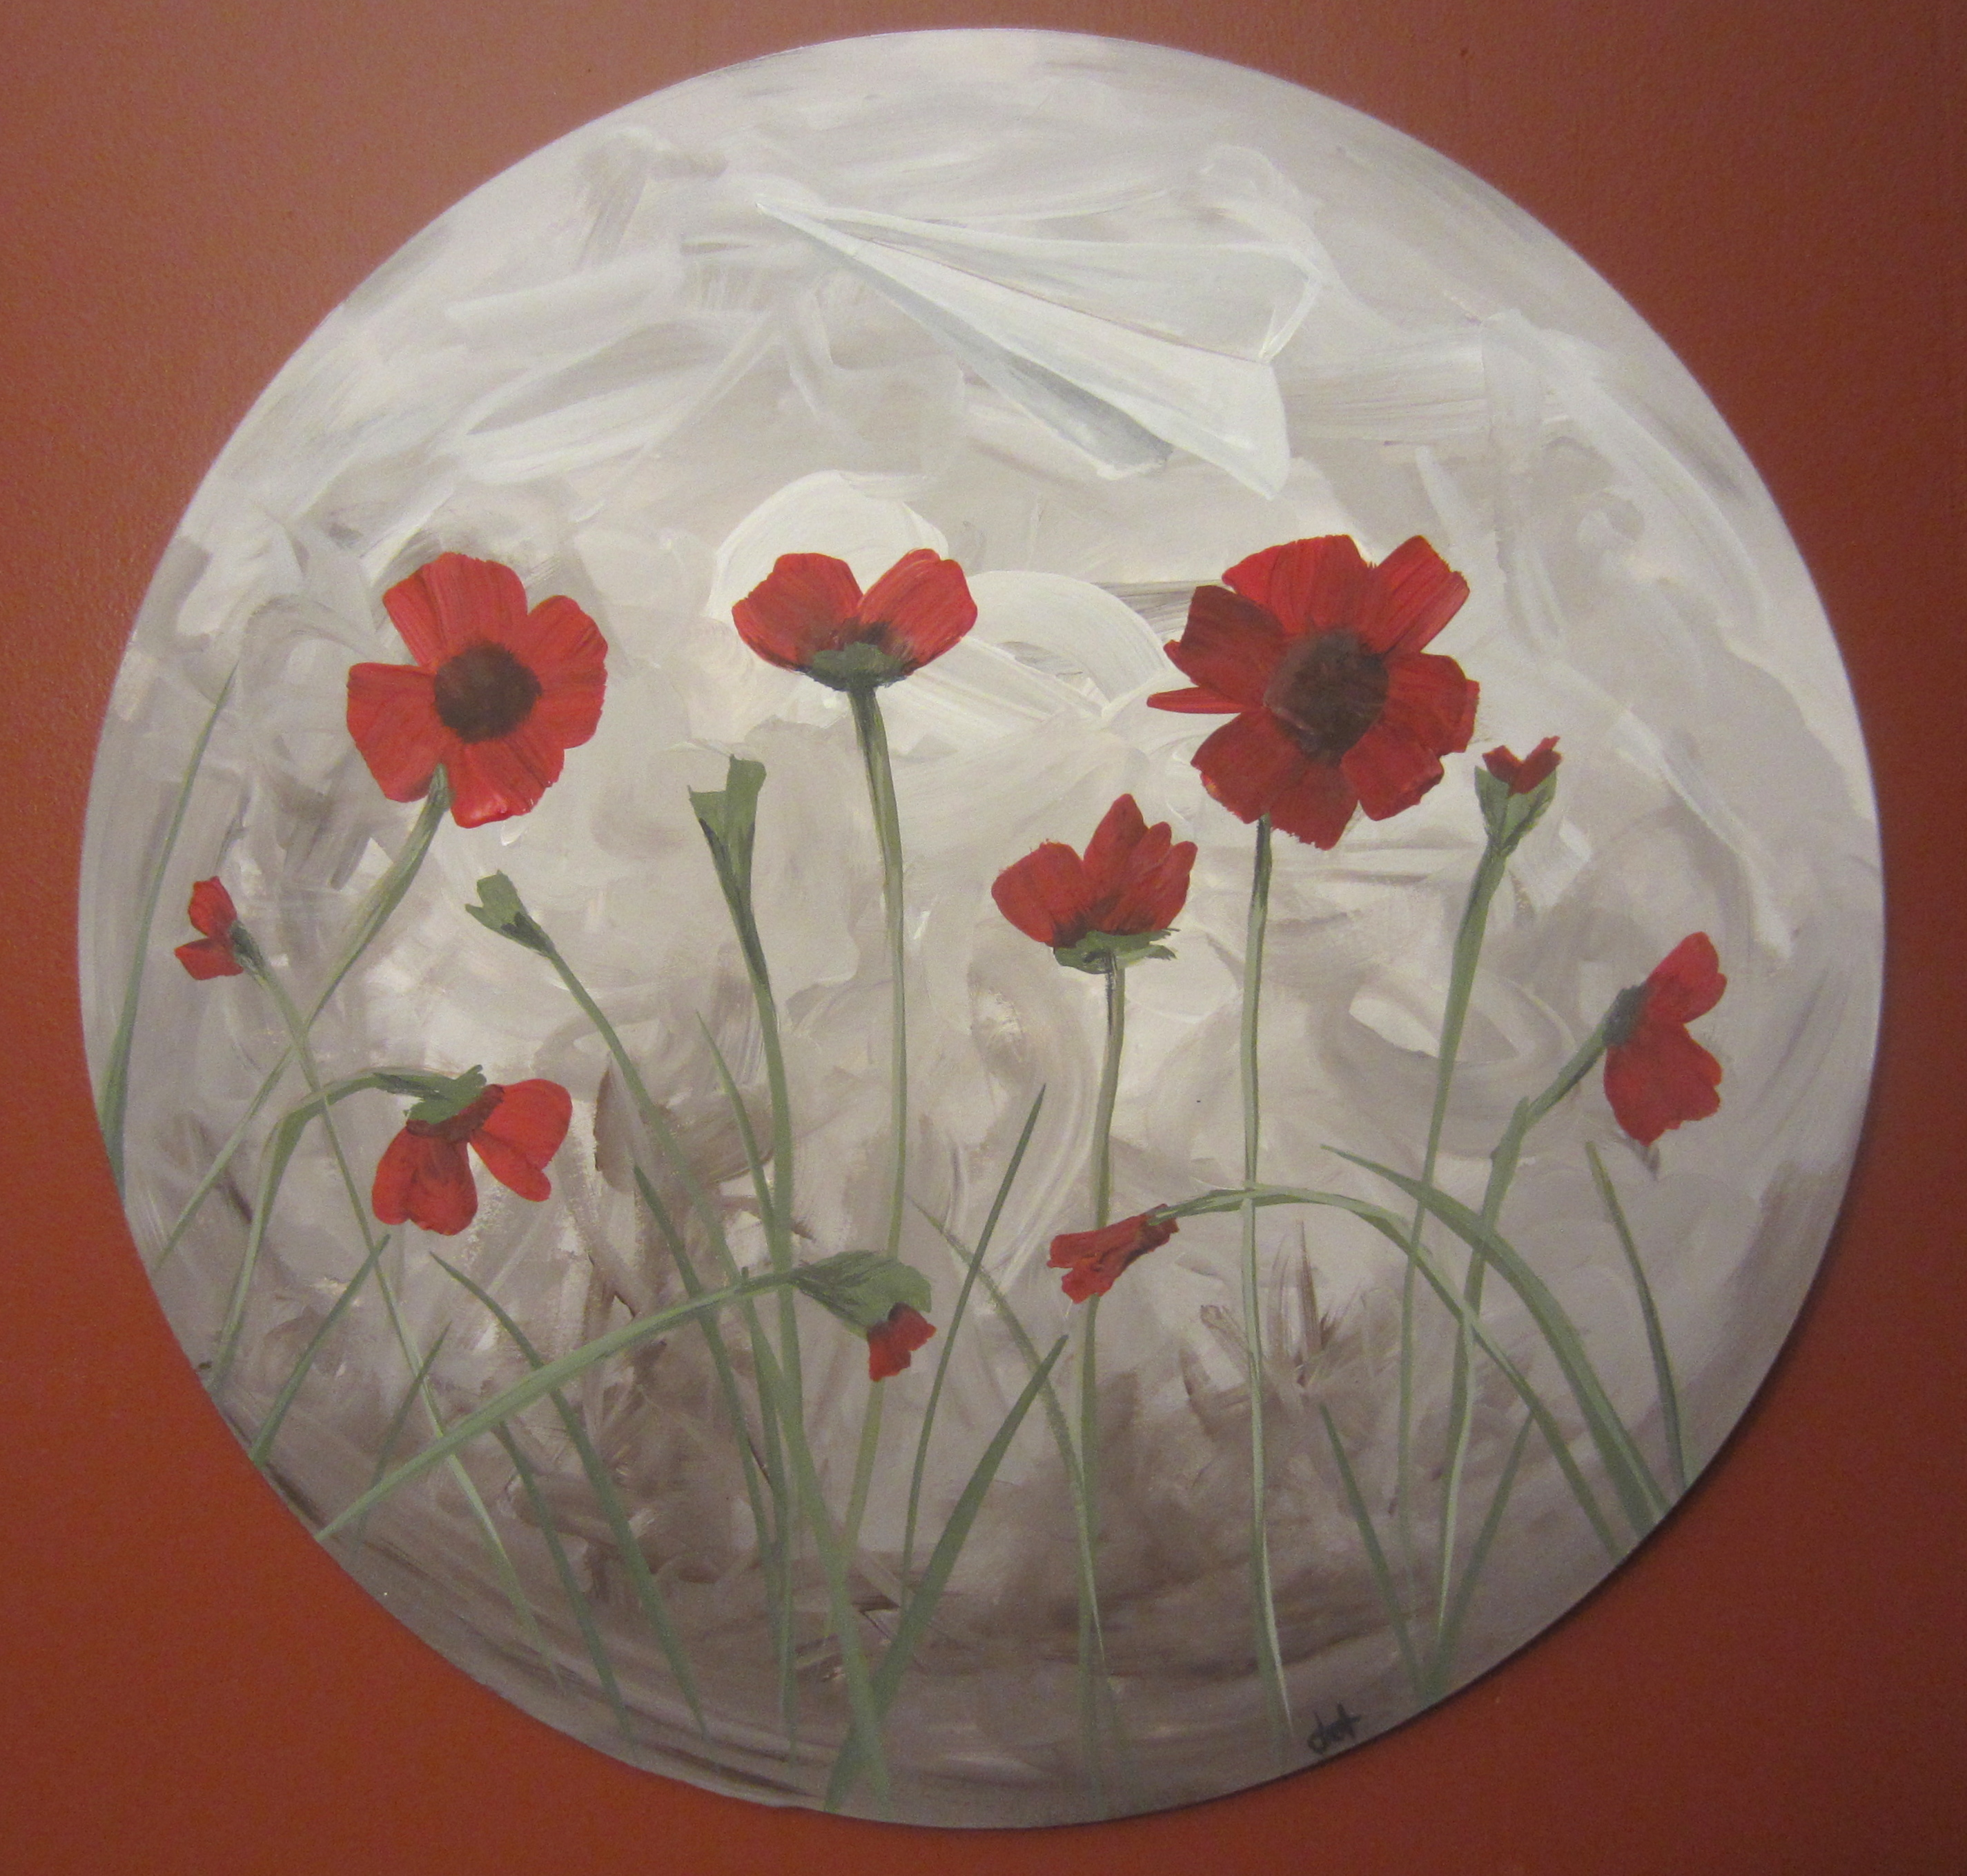 How to paint poppies part one the background busted for 1 day paint